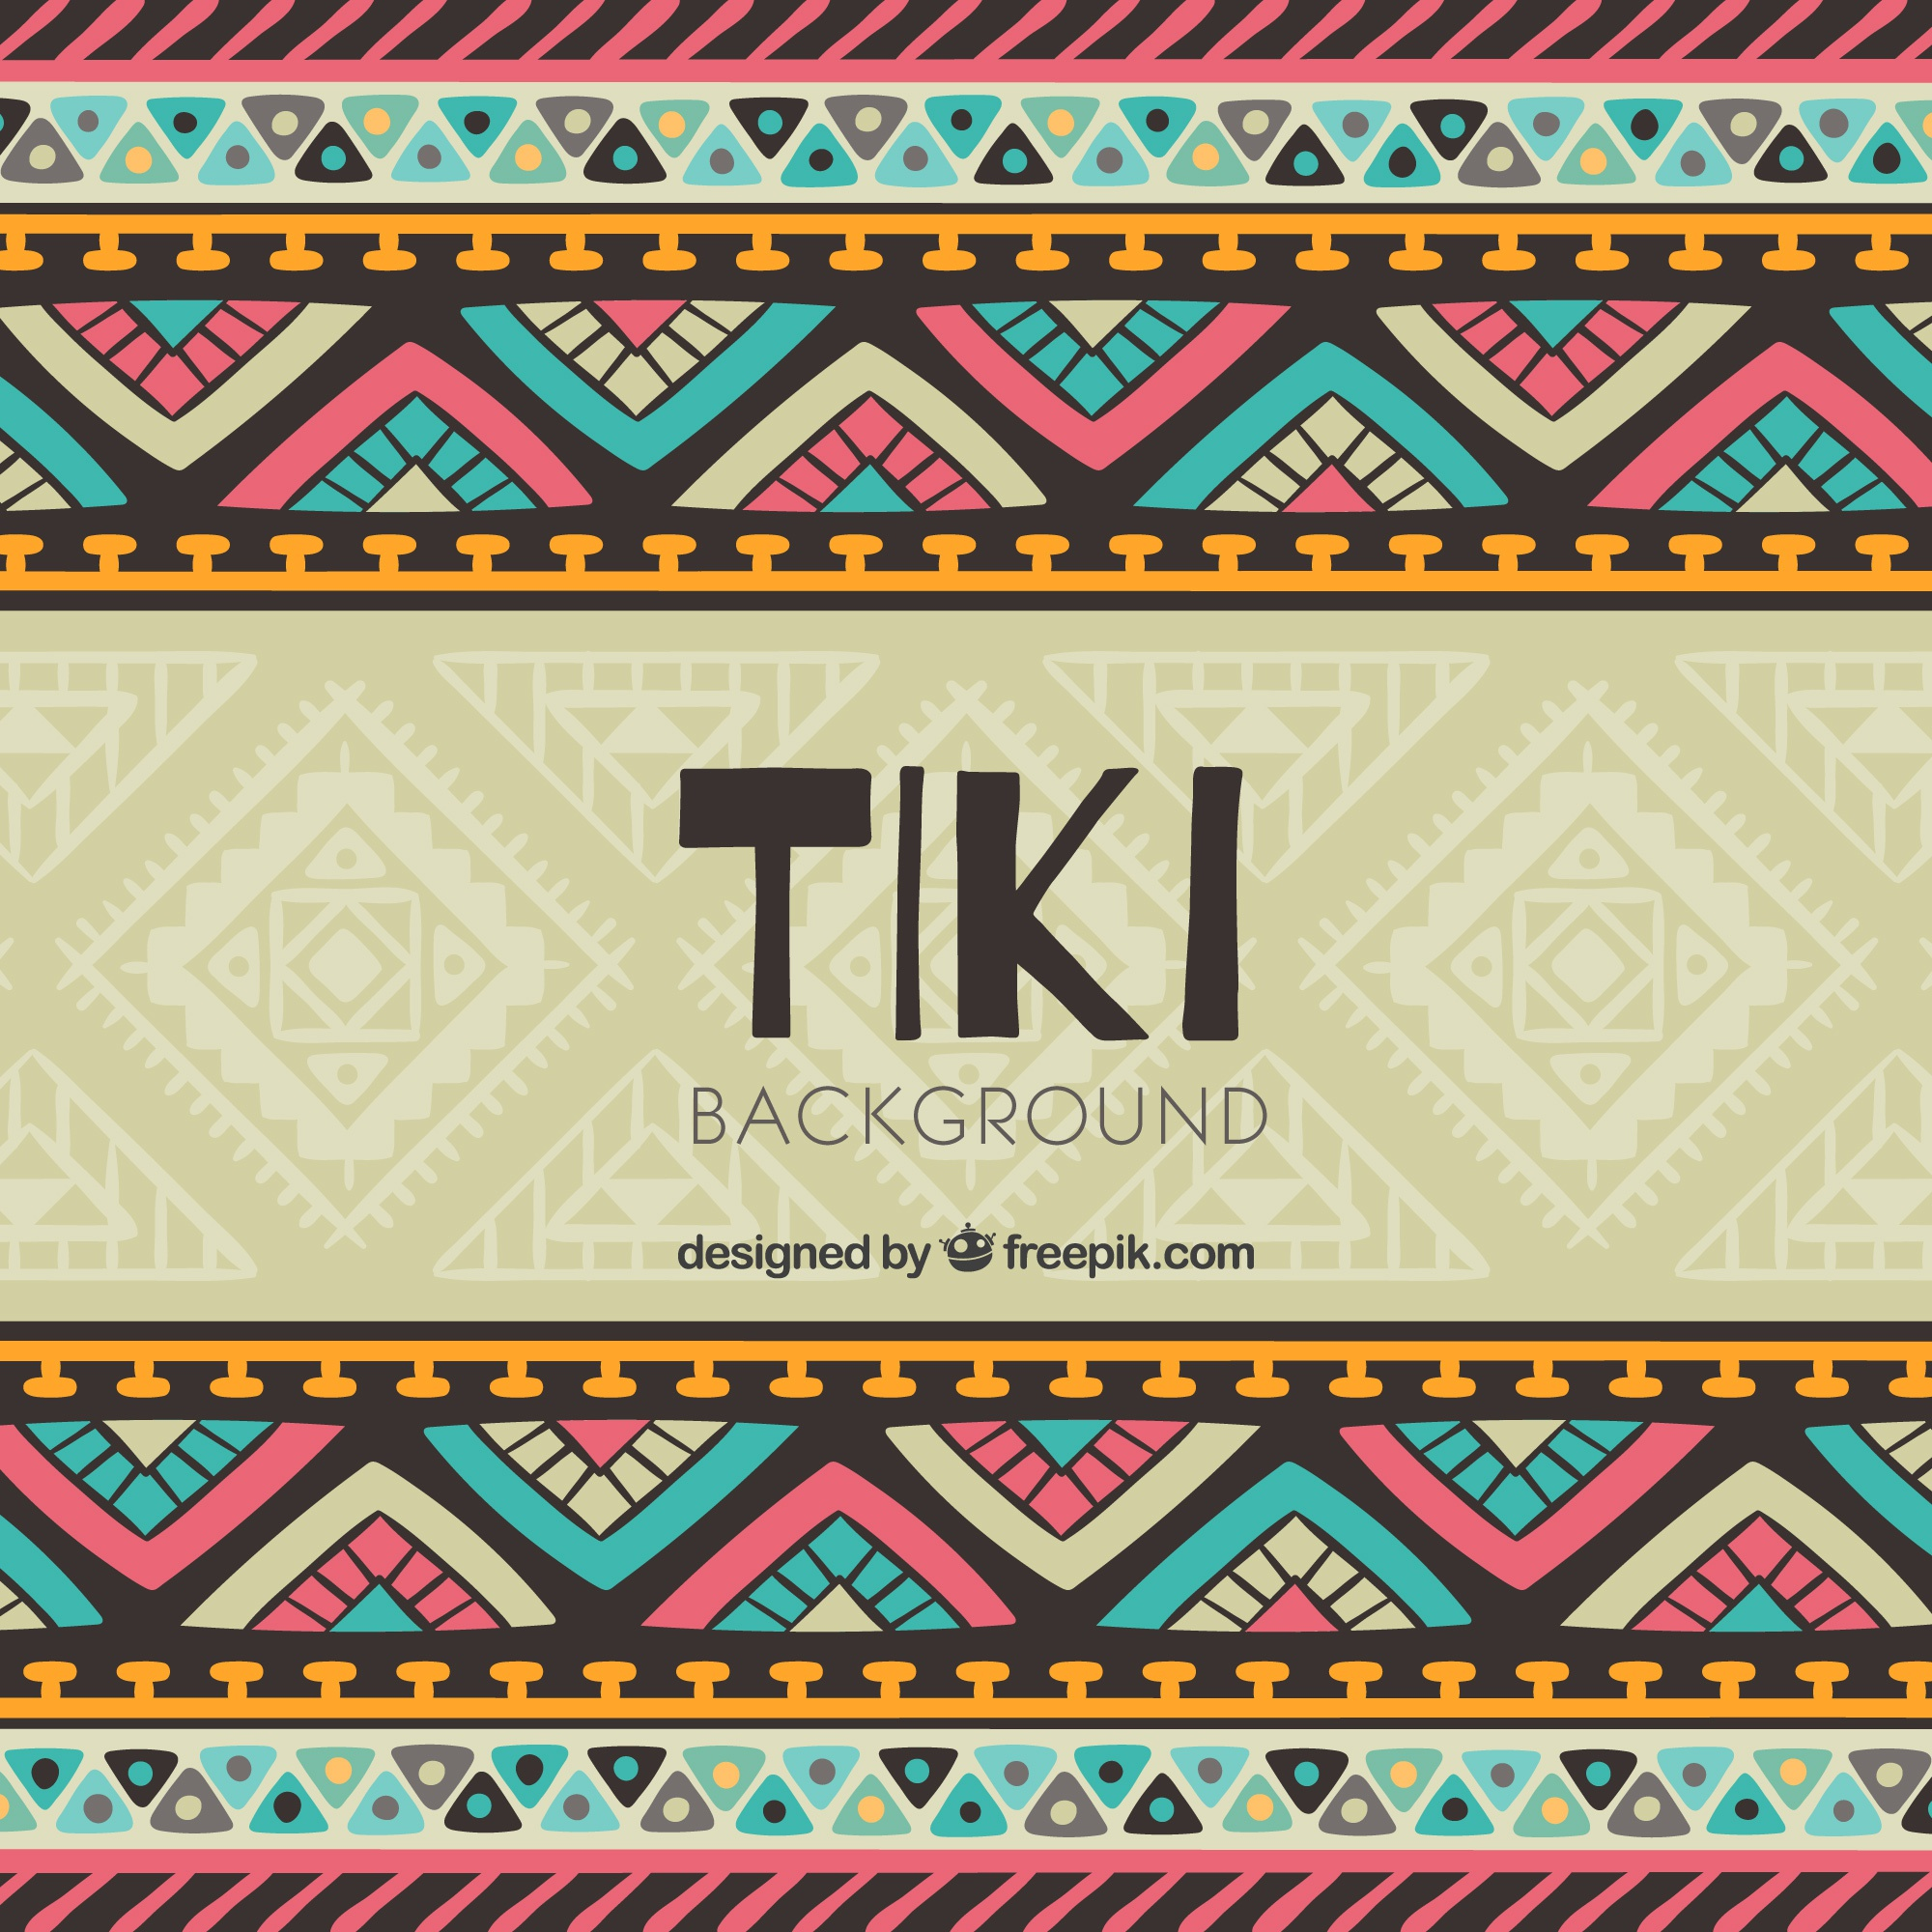 Tiki background with colorful tribal design